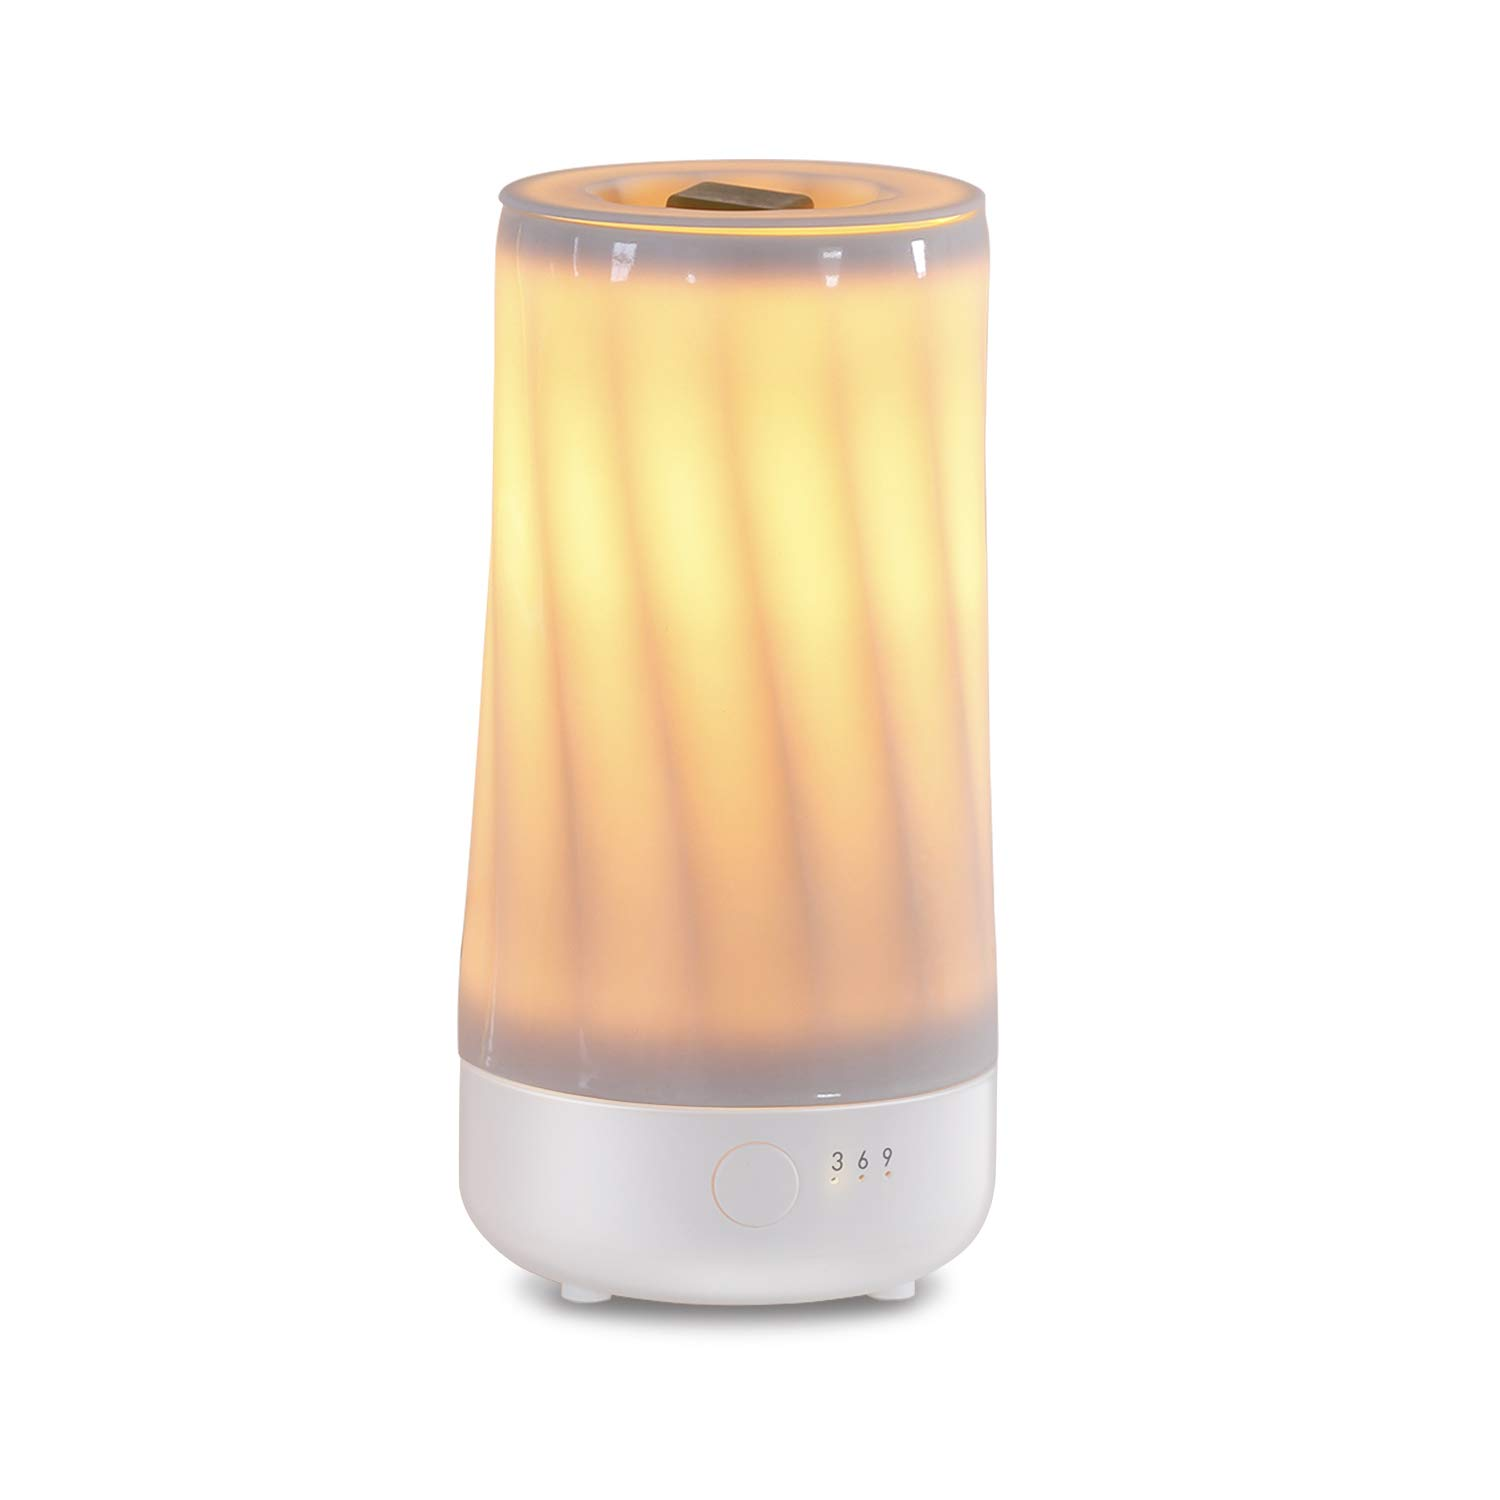 Ceramic Candle Warmer, Electric Wax Melter and Scent Diffuser with Silicone Container and Automatic Timer, 100% Safe, No Flame, Wick or Soot, Decorative Modern Design, The Dancing Flame